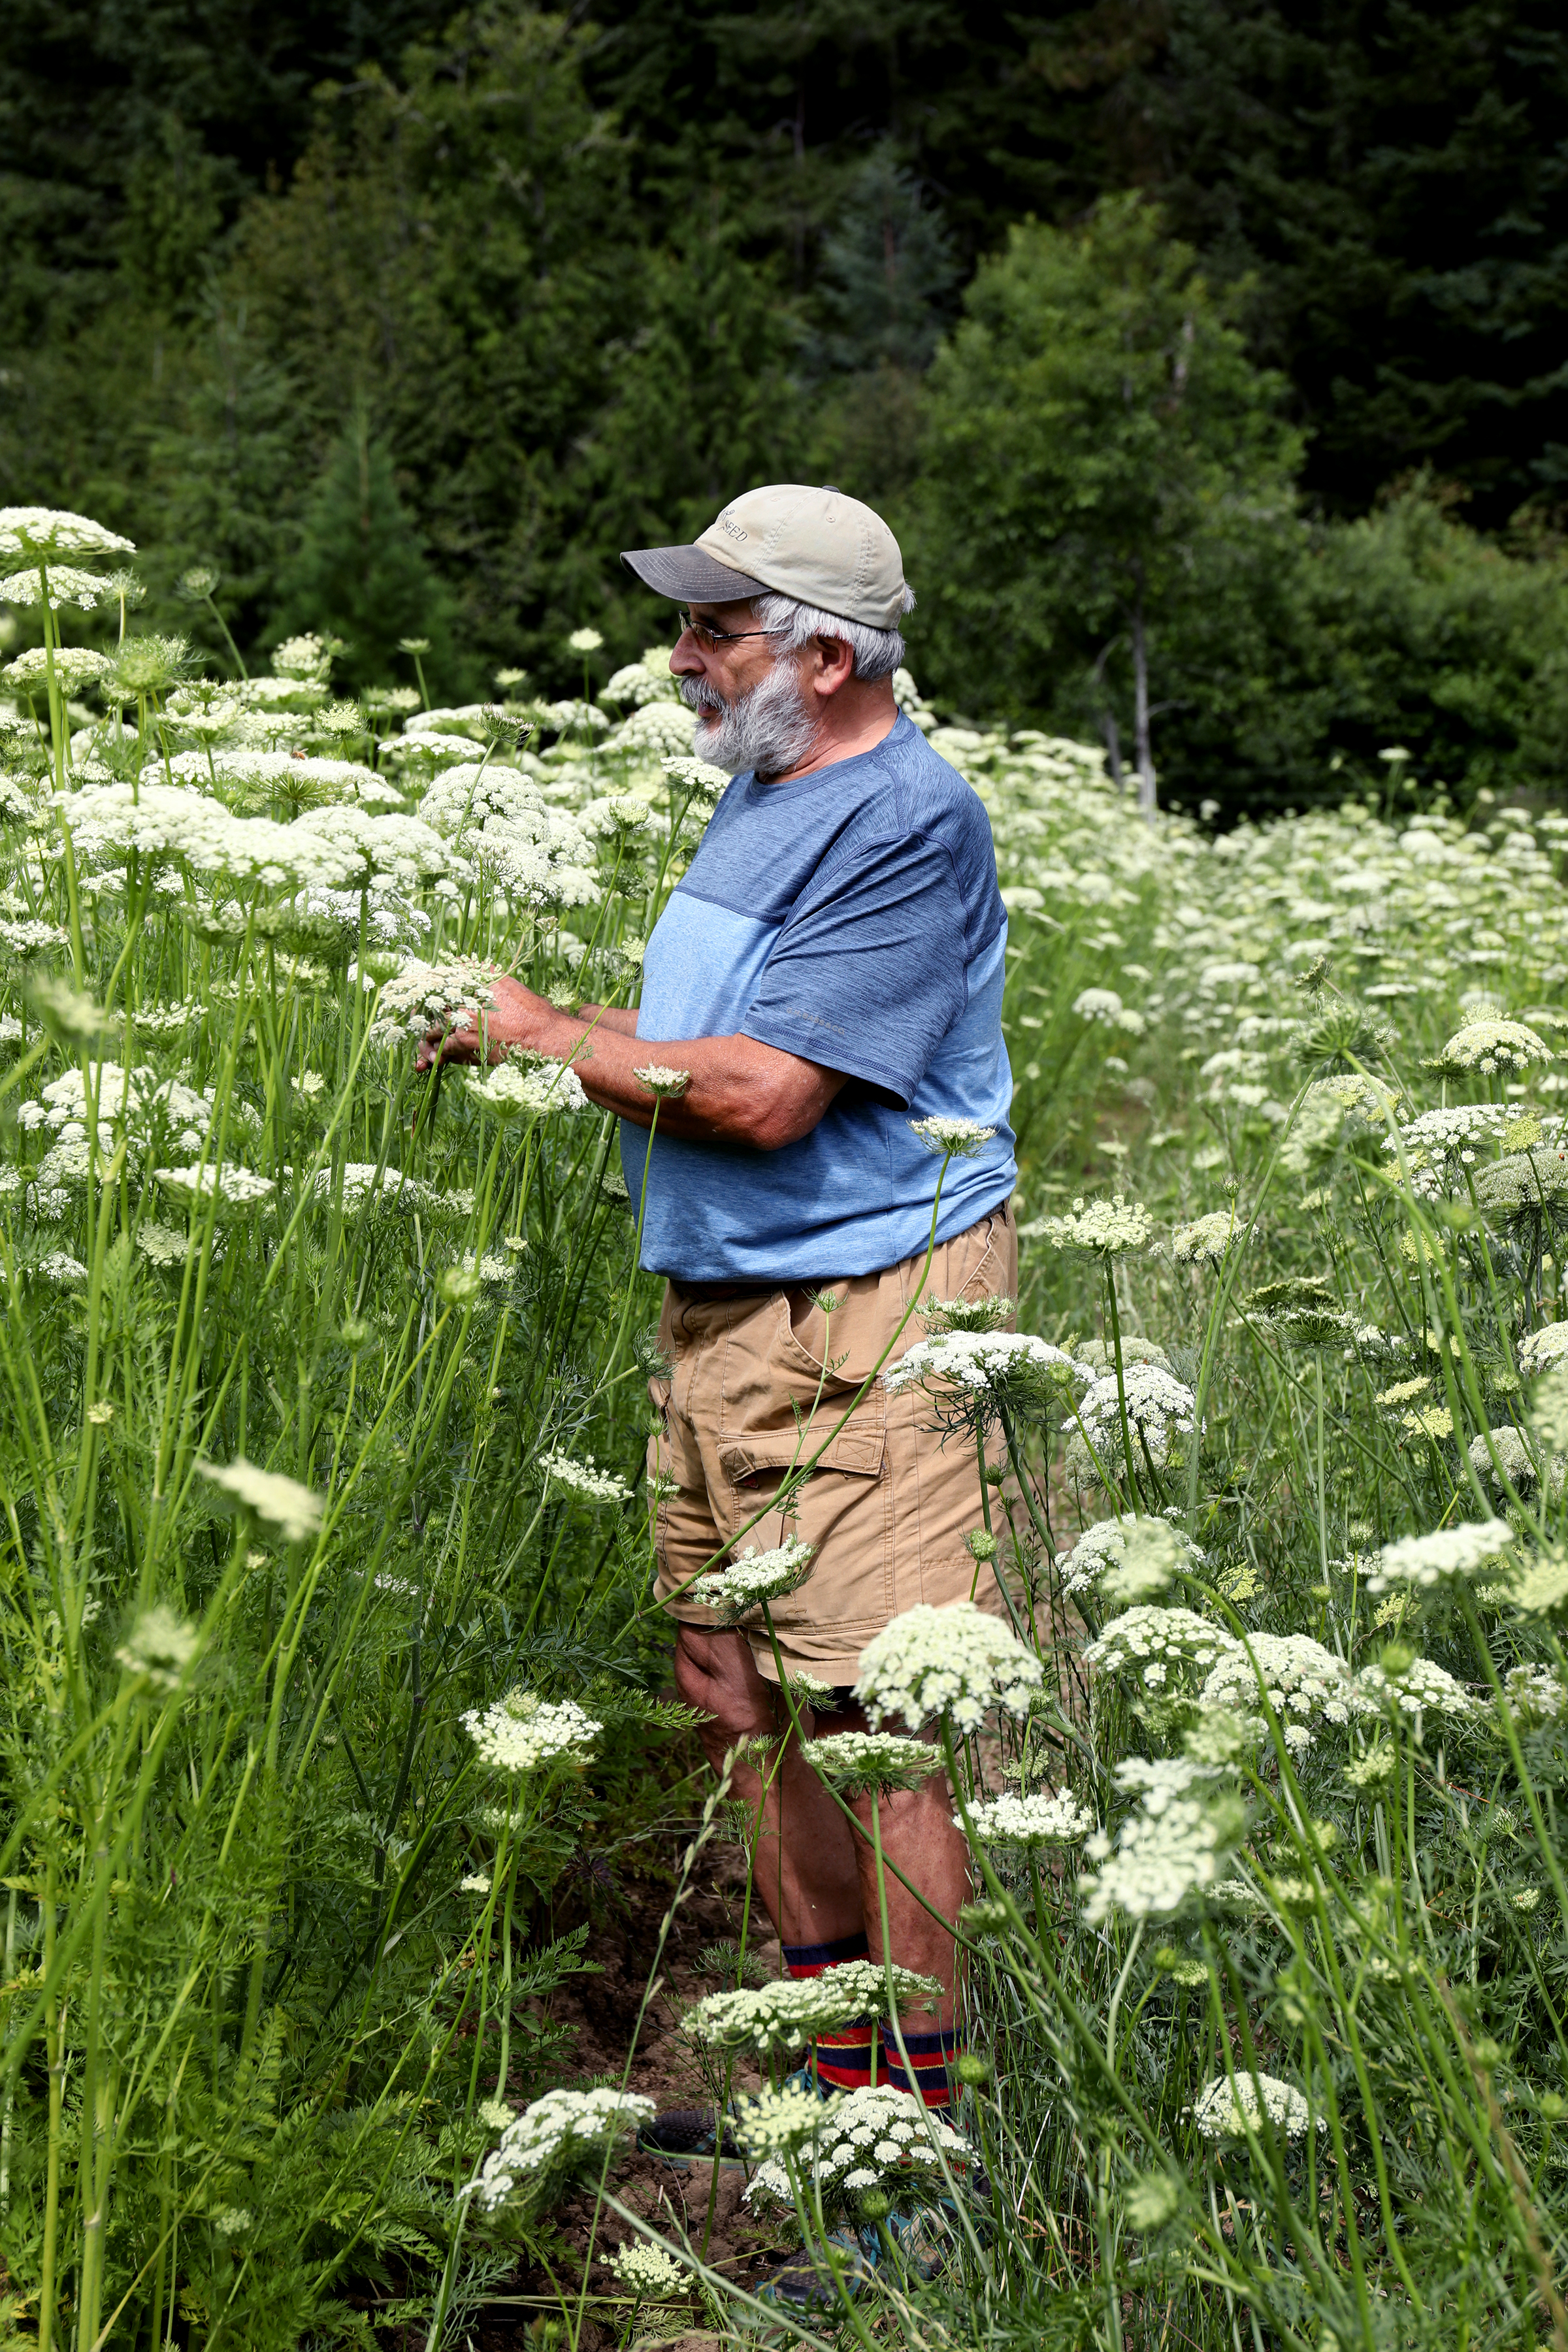 A farmer inspecting a field of blooming wild carrot flowers on a farm in Oregon.